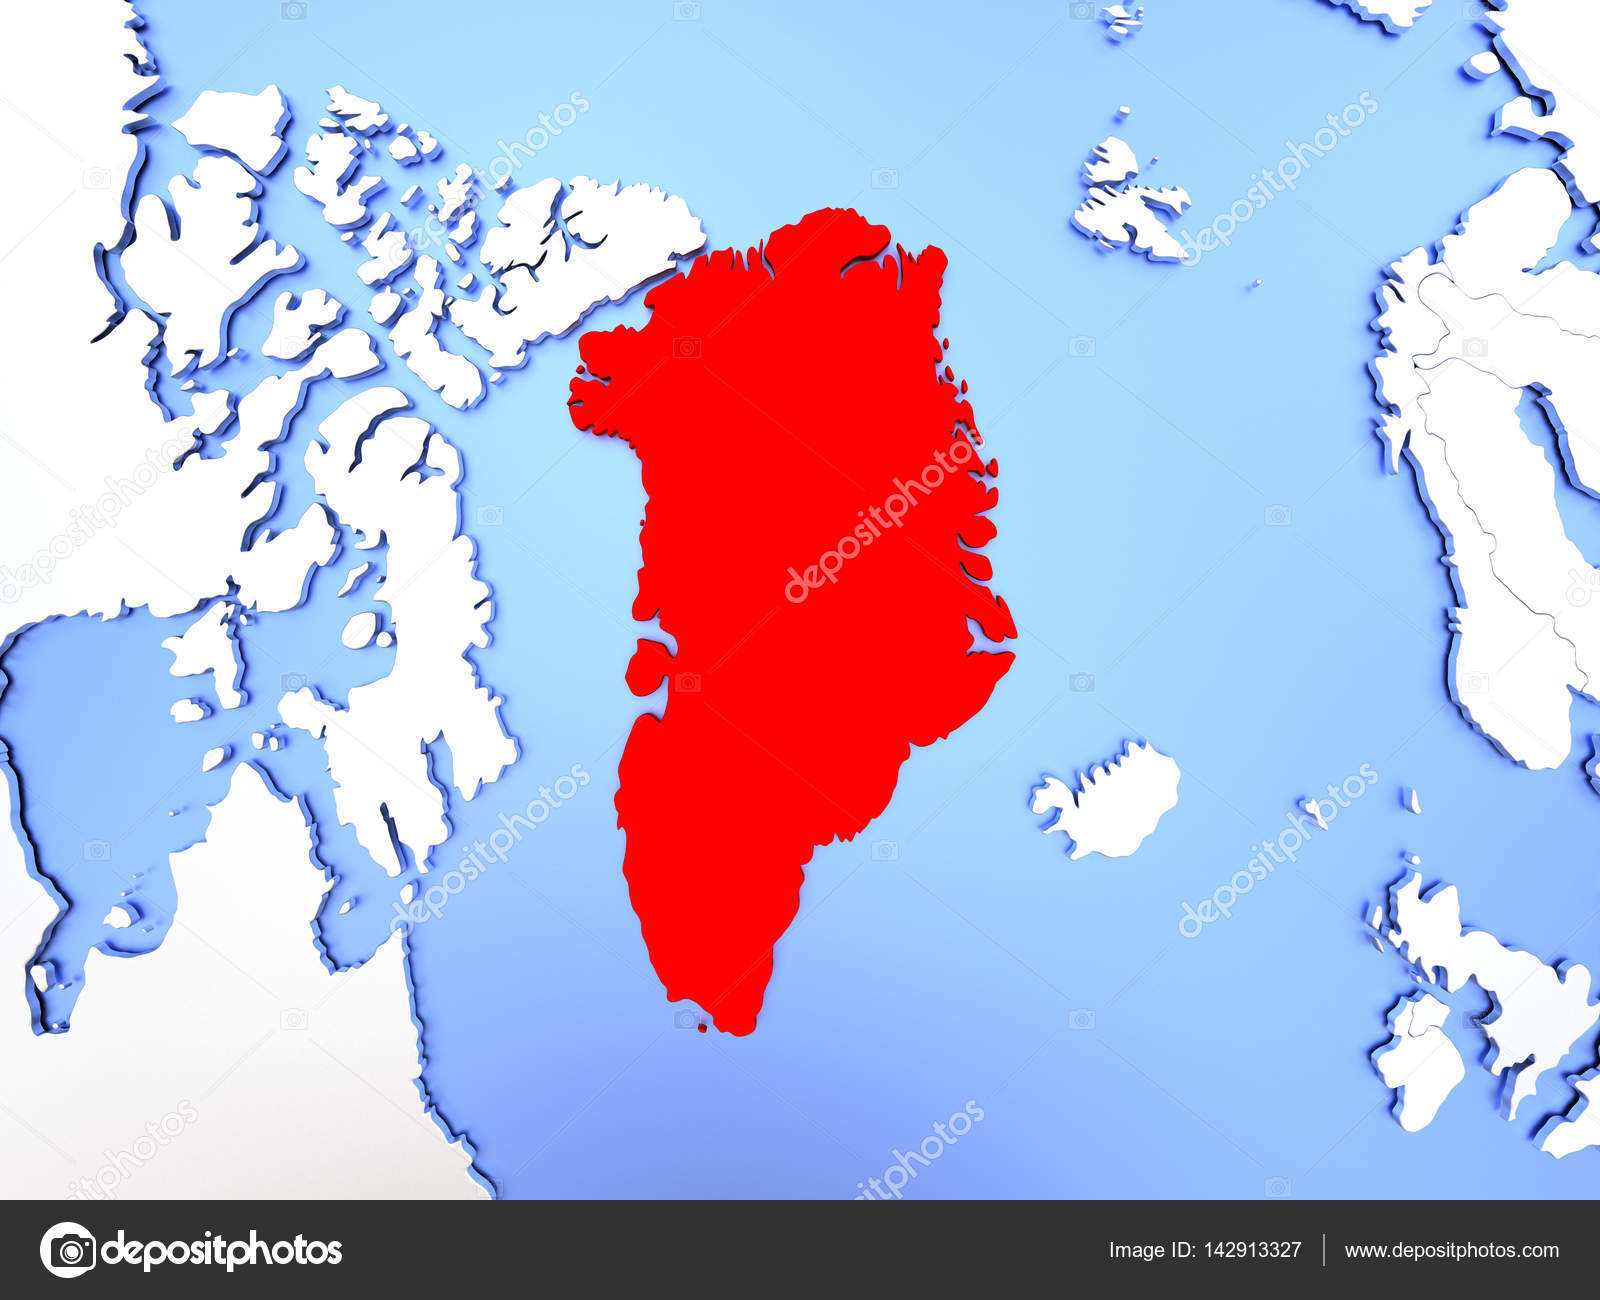 Greenland in red on map stock photo tomiger 142913327 map of greenland highlighted in red on simple shiny metallic map with clear country borders 3d illustration photo by tomiger gumiabroncs Images